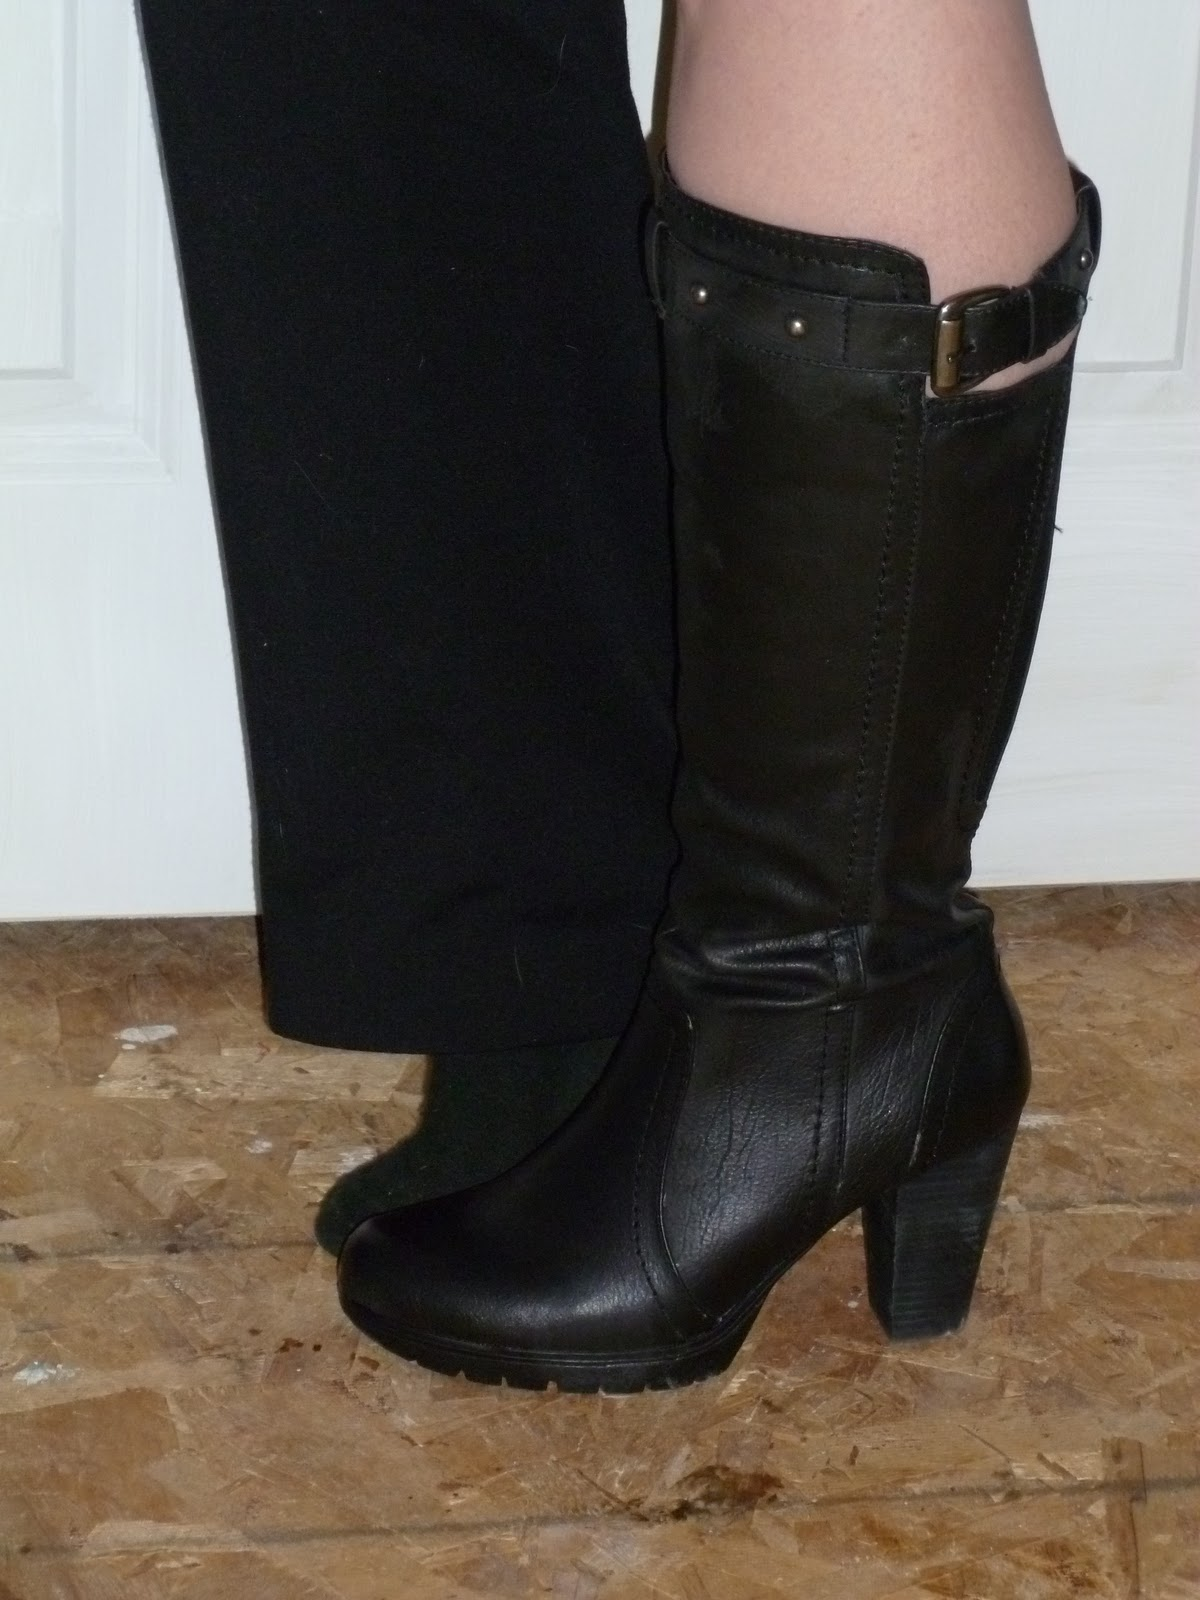 Boots for fat girls